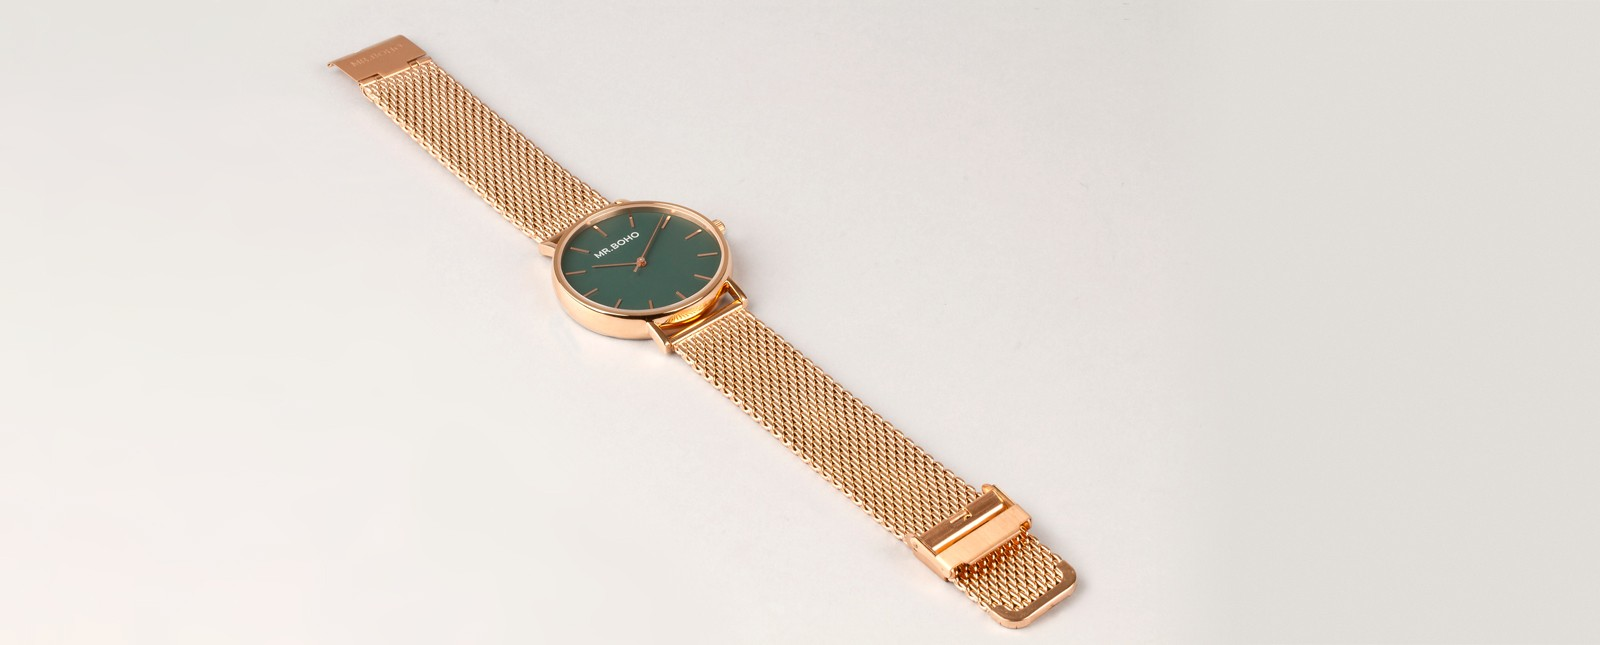 Green Metallic Copper - Watches | Mr. Boho